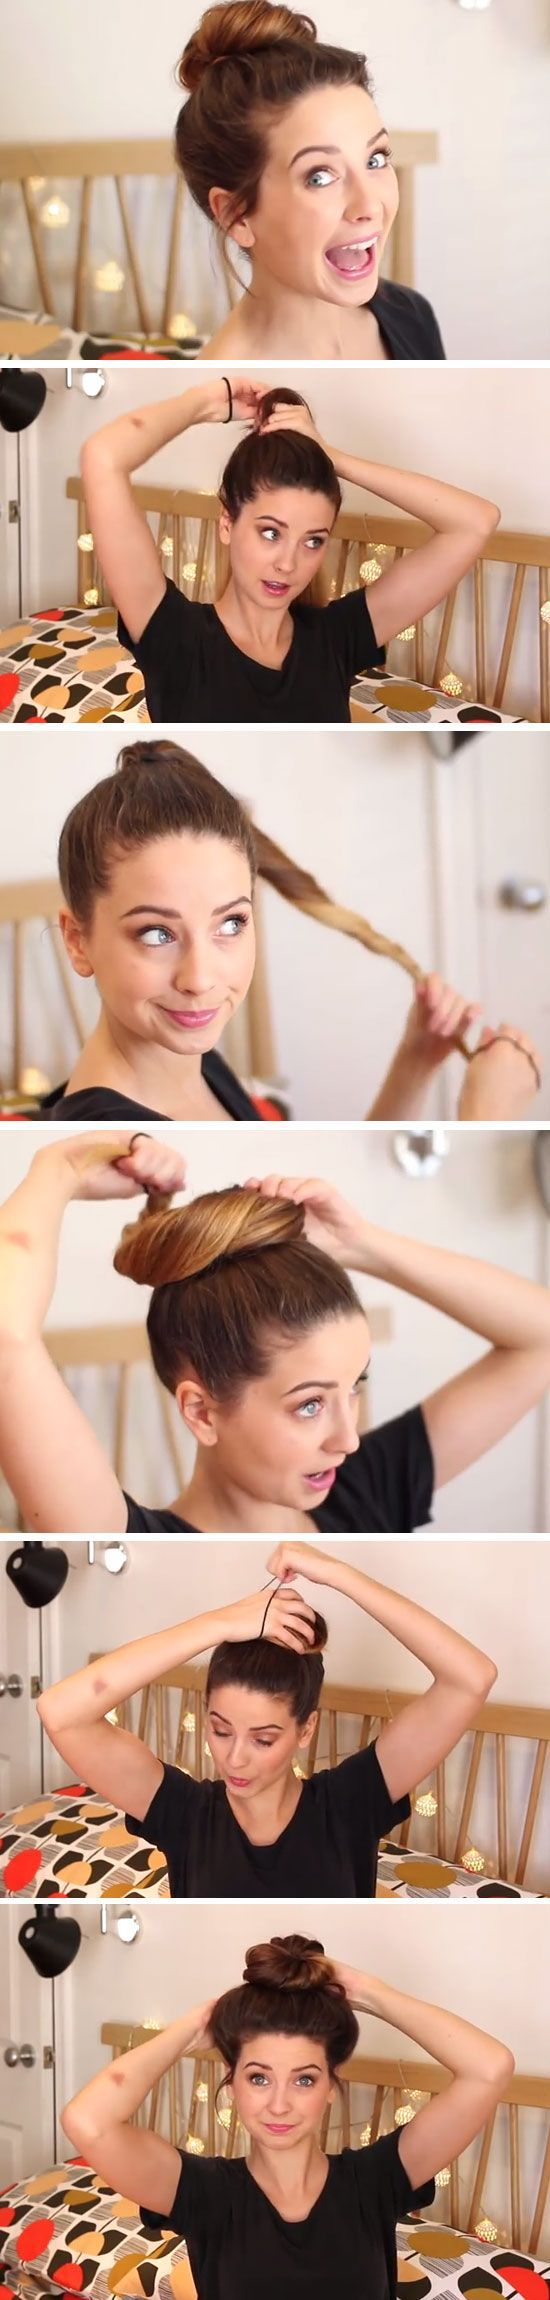 15 No Heat #Hair Tutorials You Must Learn for the Next Season - See more at: http://www.prettydesigns.com/15-no-heat-hair-tutorials-you-must-learn-for-the-next-season/#sthash.hyCYn1uK.dpuf